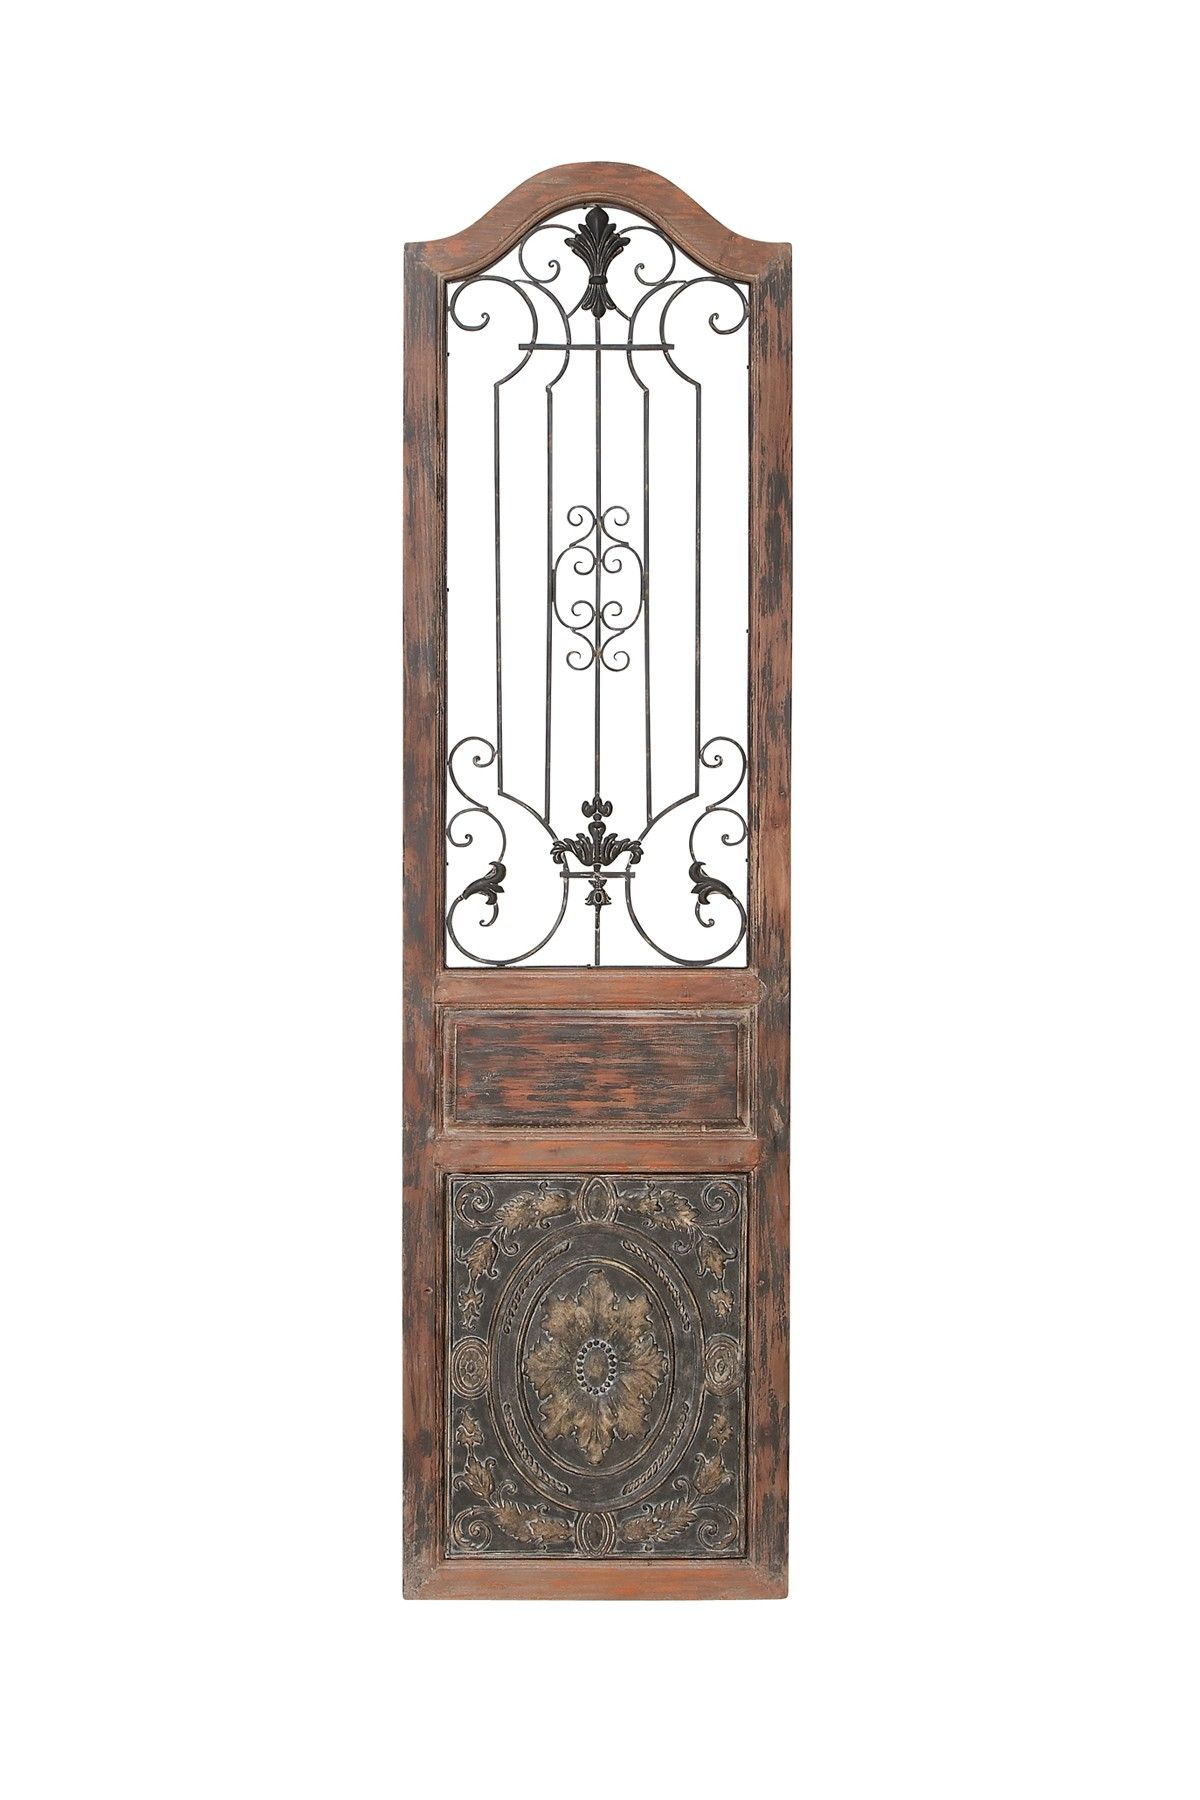 Willow Row Brown Traditional Arched Wood Wall Decor Hautelook Metal Wall Decor Decorative Wall Panels Wood Wall Decor